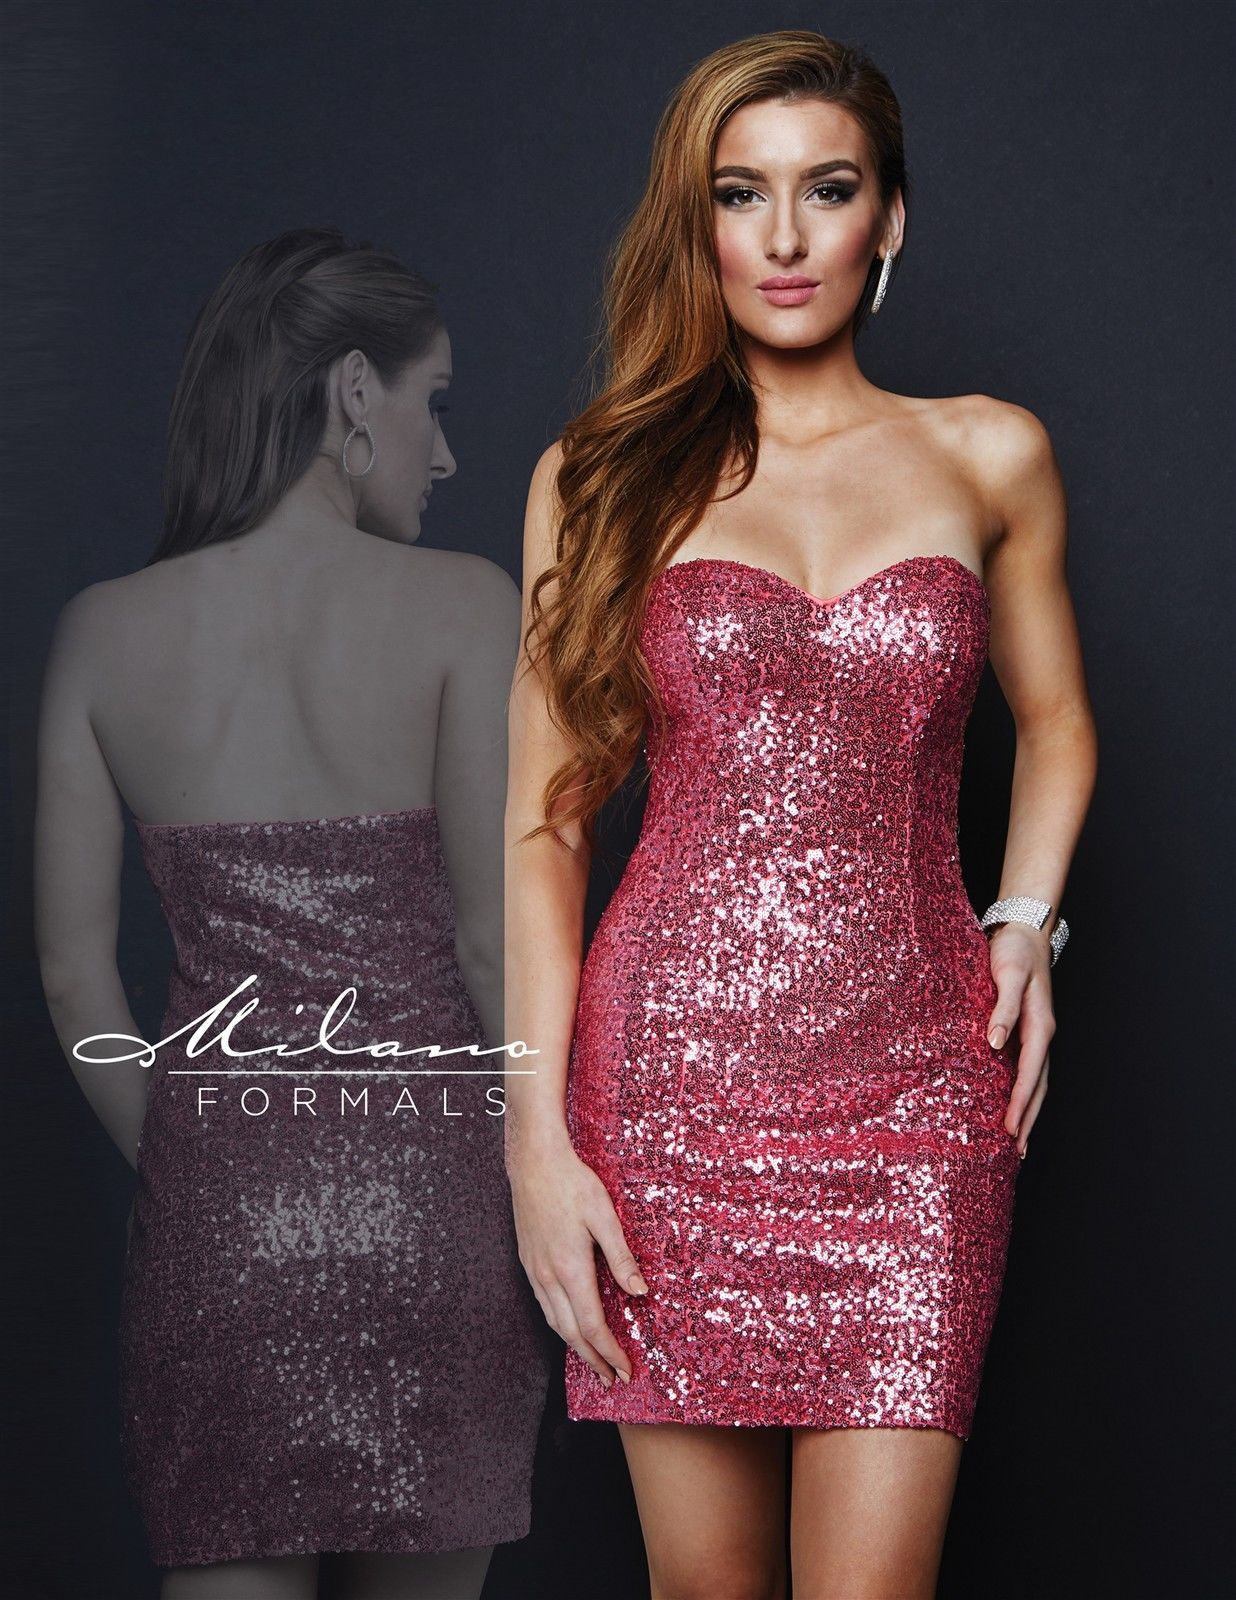 Milano Formals E1670 Light Fuchsia Pink Sequins Strapless Party Mini Dress 12